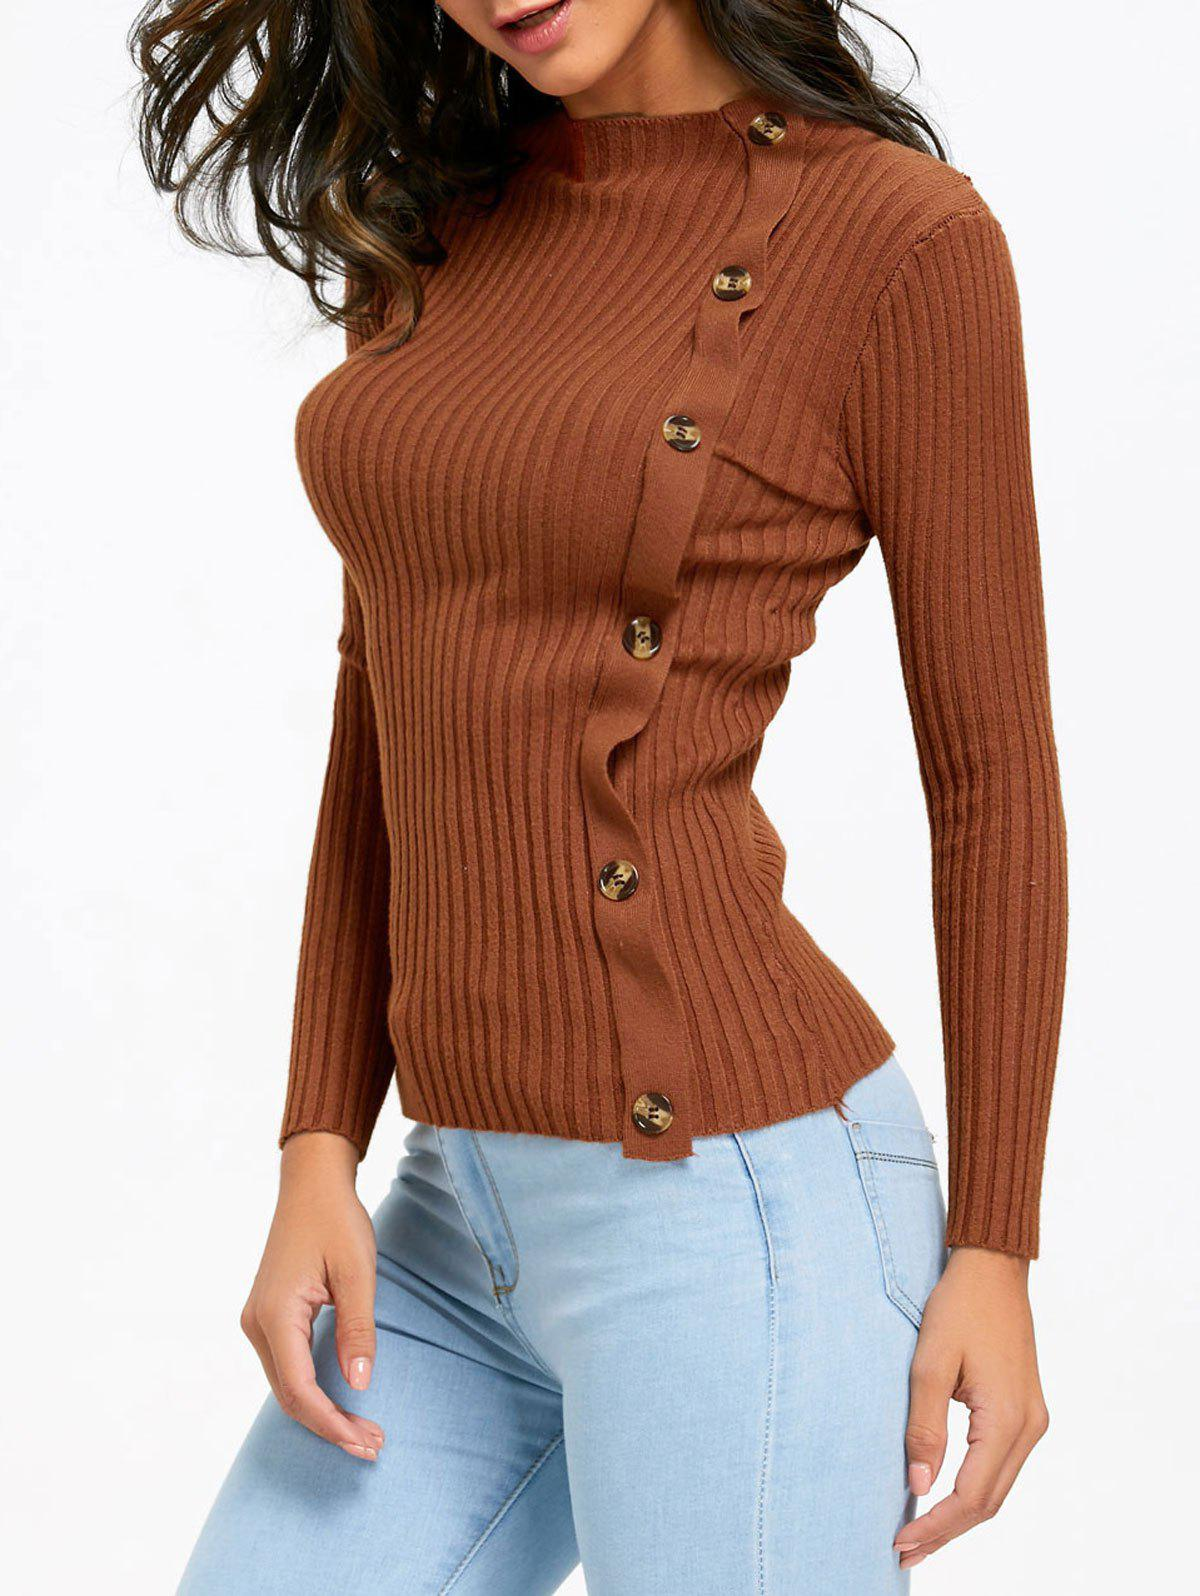 Ribbed Side Button Up Knit Sweater - KHAKI ONE SIZE